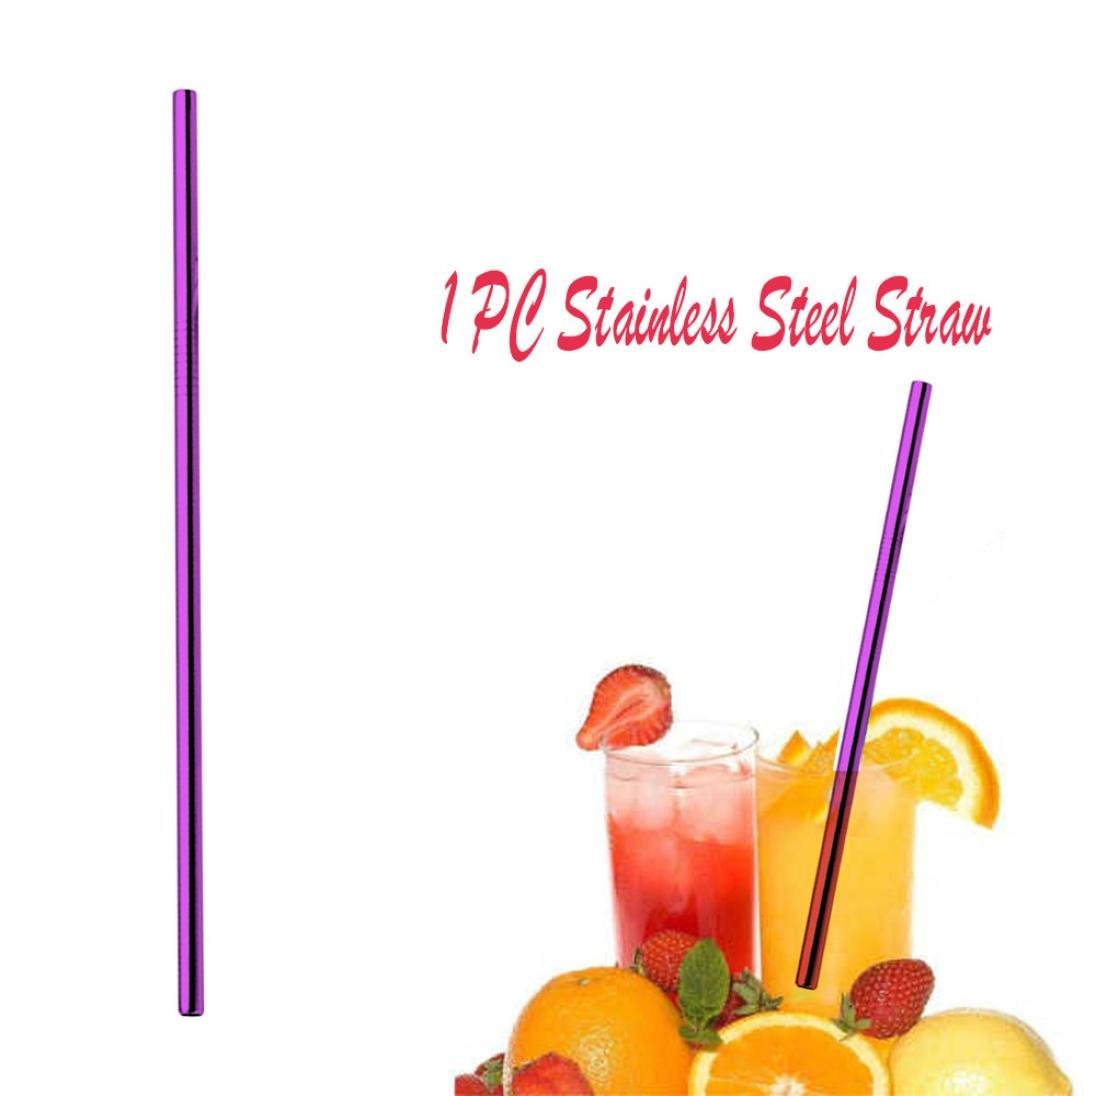 Reusable Metal Straws, Drinking Straws, Aluminum Straws, Smoothies Straws, Wide Straws, Rainbow Colorful Straws for Party (Purple)